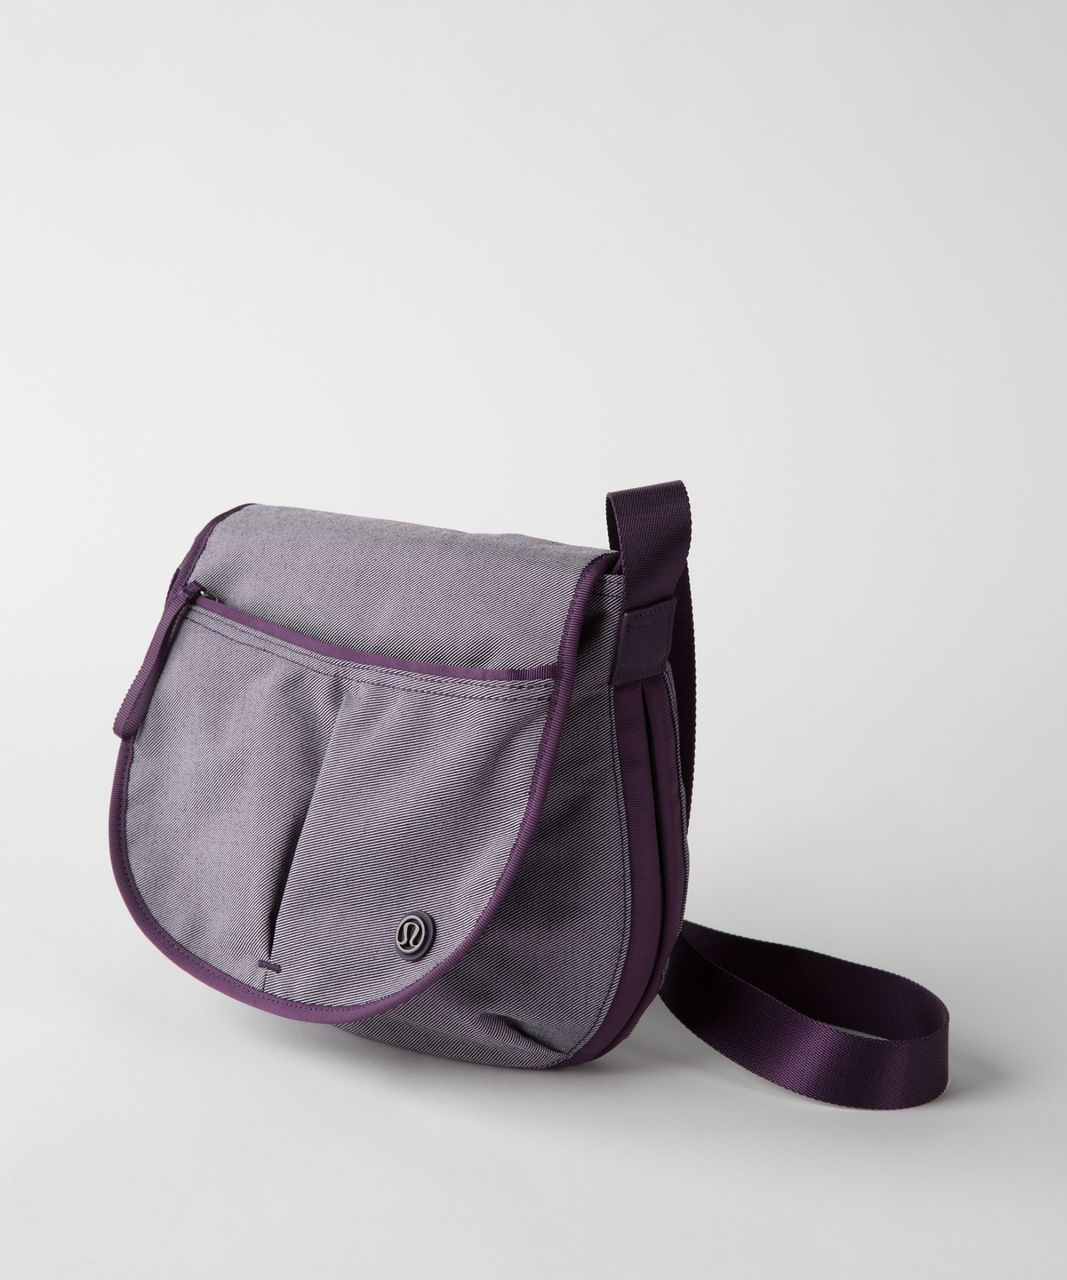 db0f5f0075b Lululemon The Essentials Bag - Deep Zinfandel / White - lulu fanatics